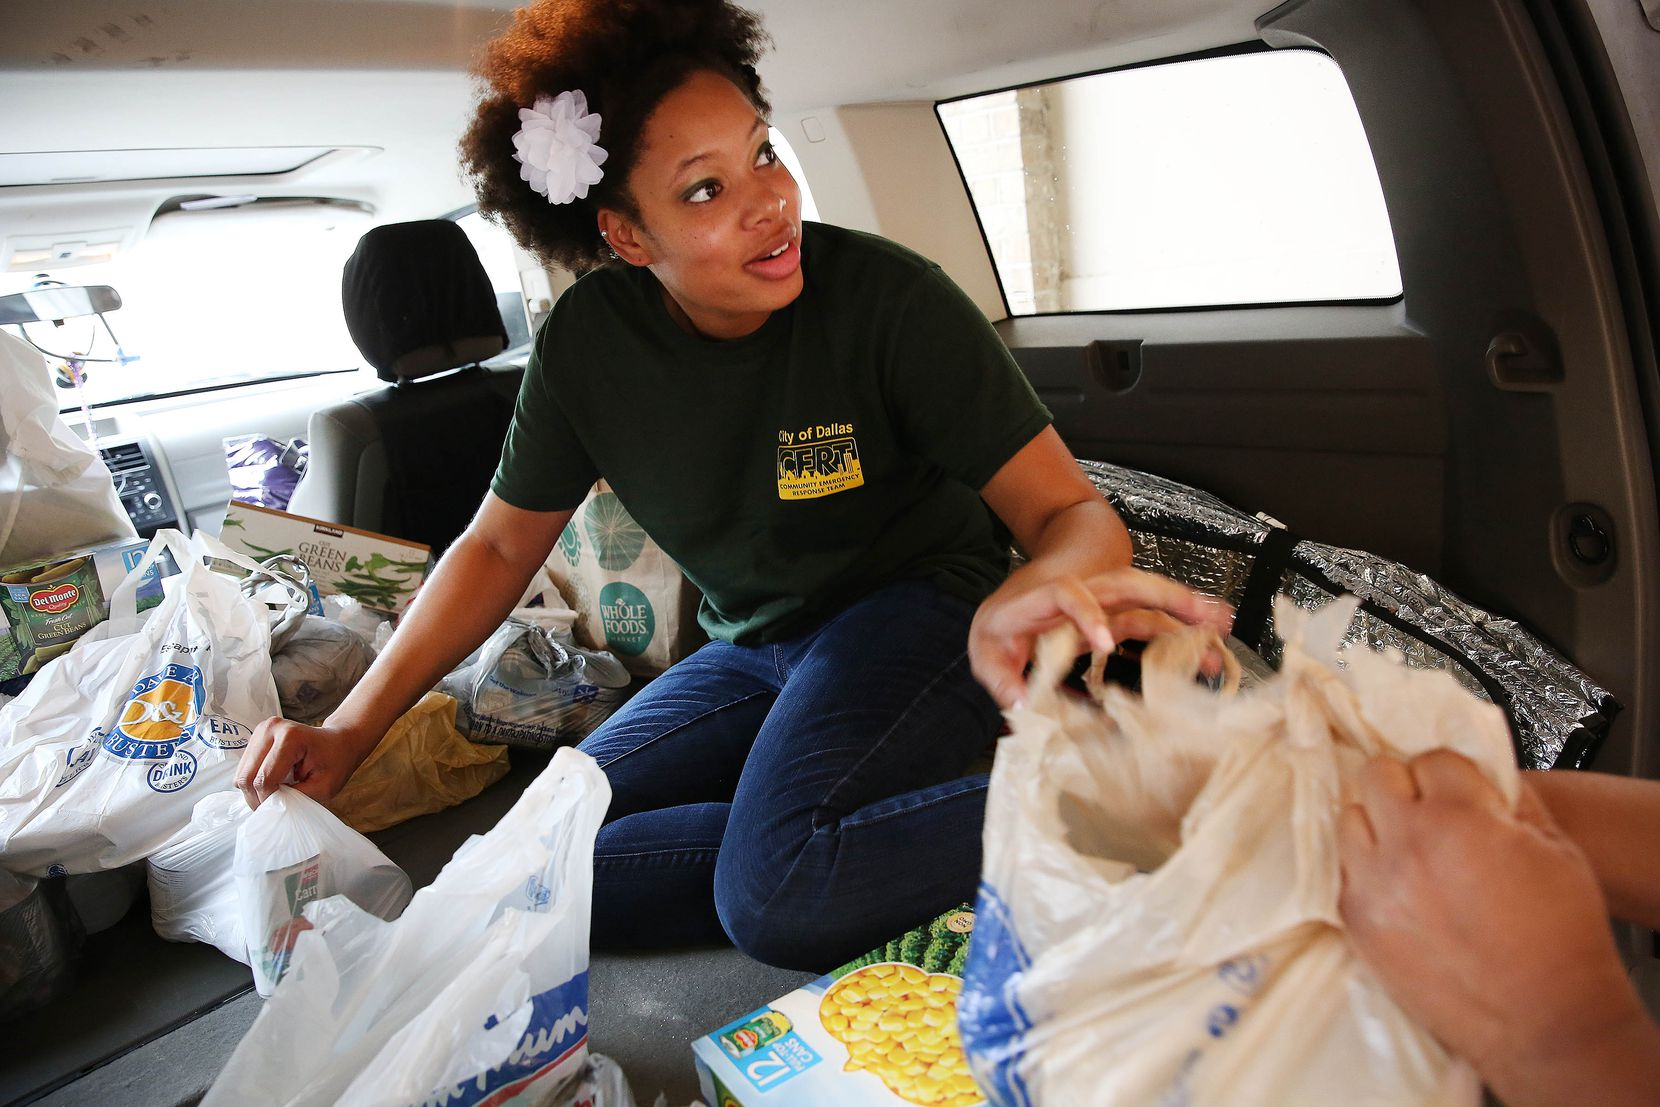 Alyce Mark, of Christian Chapel Temple of Faith, helps to unload donations at a drop off location of Trusted World donations for Hurricane Harvey relief in Dallas on Sunday.